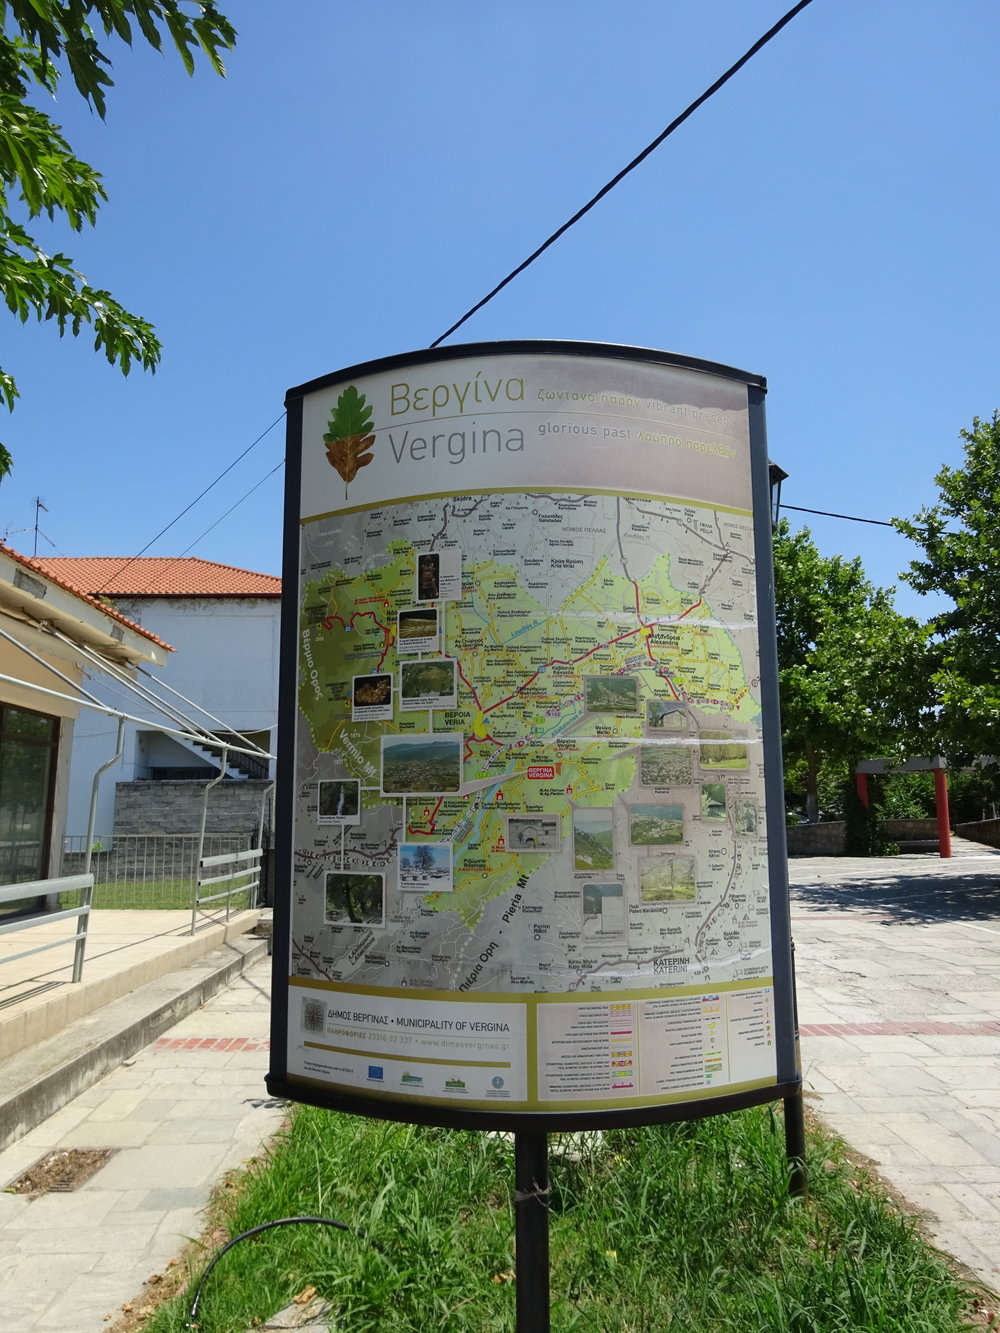 "Figure 4: A sign on a Vergina city sidewalk (Vergina is the home of the Macedonian royal tombs--Alexander the Great's family). Above the map, the city's motto appears in (modern) Greek and in English: ""ζωντανό παρόν/vibrant present, glorious past/λαμπρό παρελθόν"" The ordering of these two phrases demonstrates how Vergina values present and past, but it's significant that the present comes first. Image credit: Vincent Tomasso."